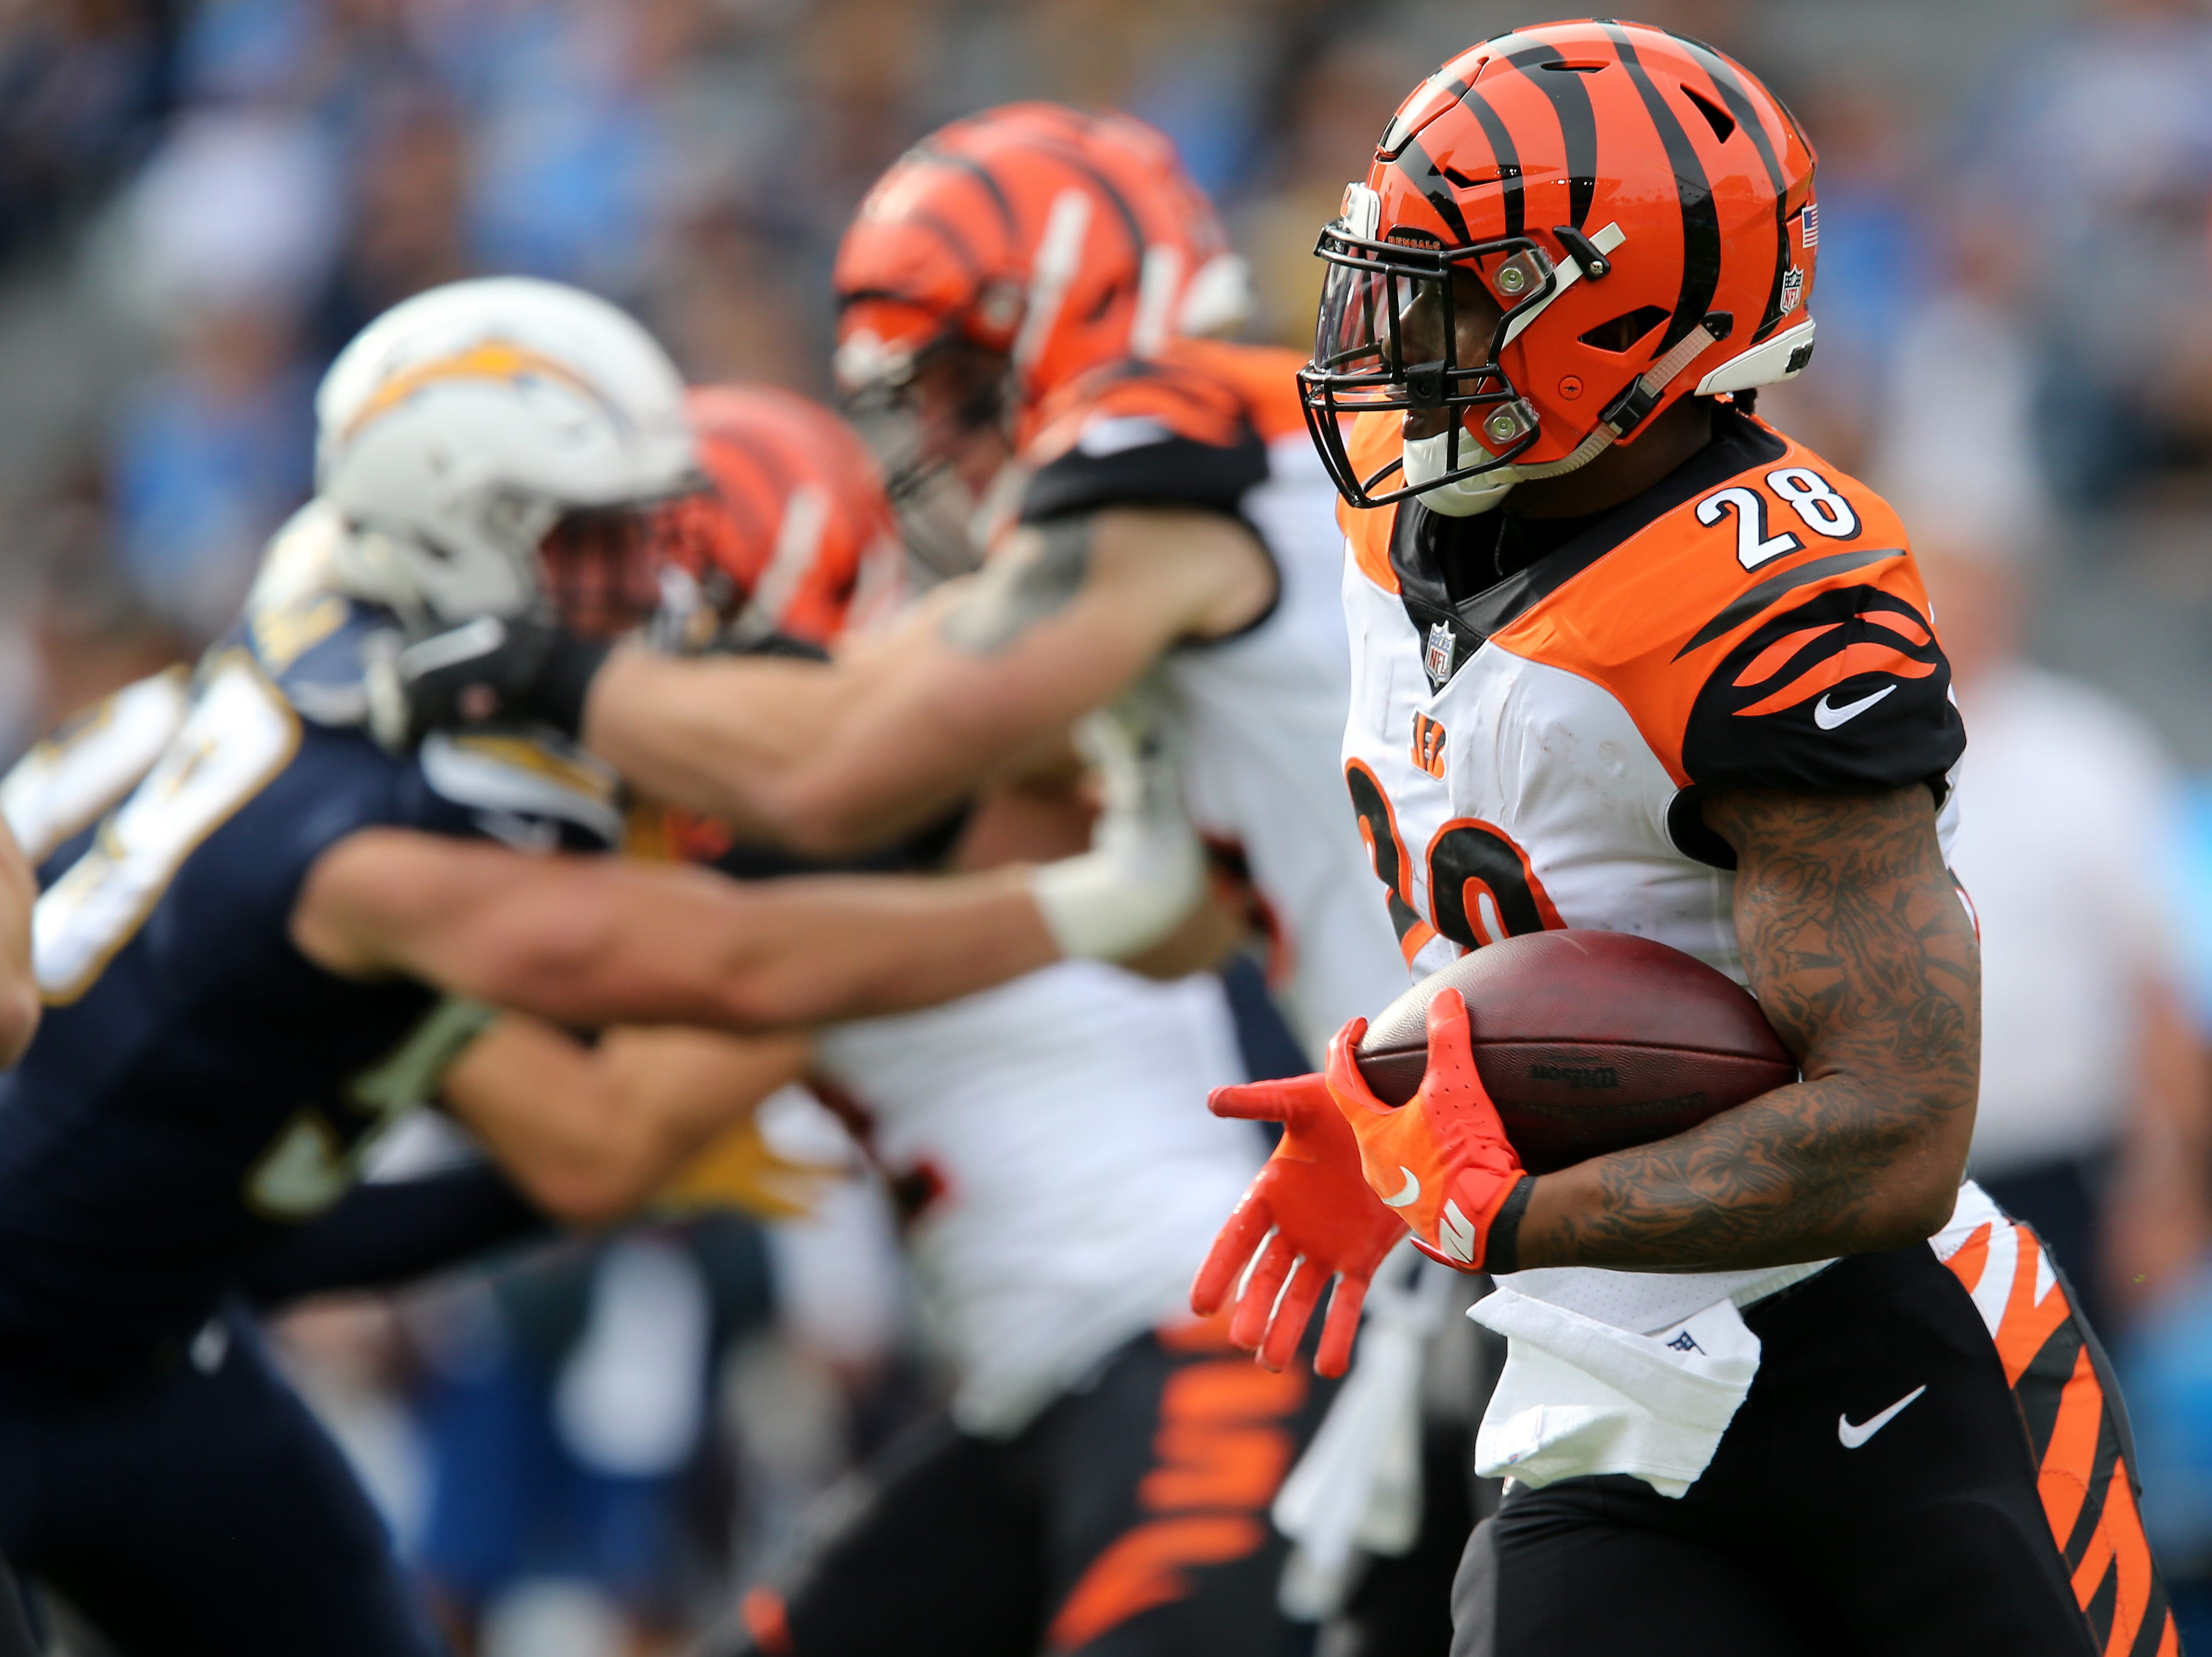 Cincinnati Bengals running back Joe Mixon (28) carries the ball in the first quarter of a Week 14 NFL football game against the Los Angeles Chargers , Sunday, Dec. 9, 2018, at StubHub Center in Carson, California.